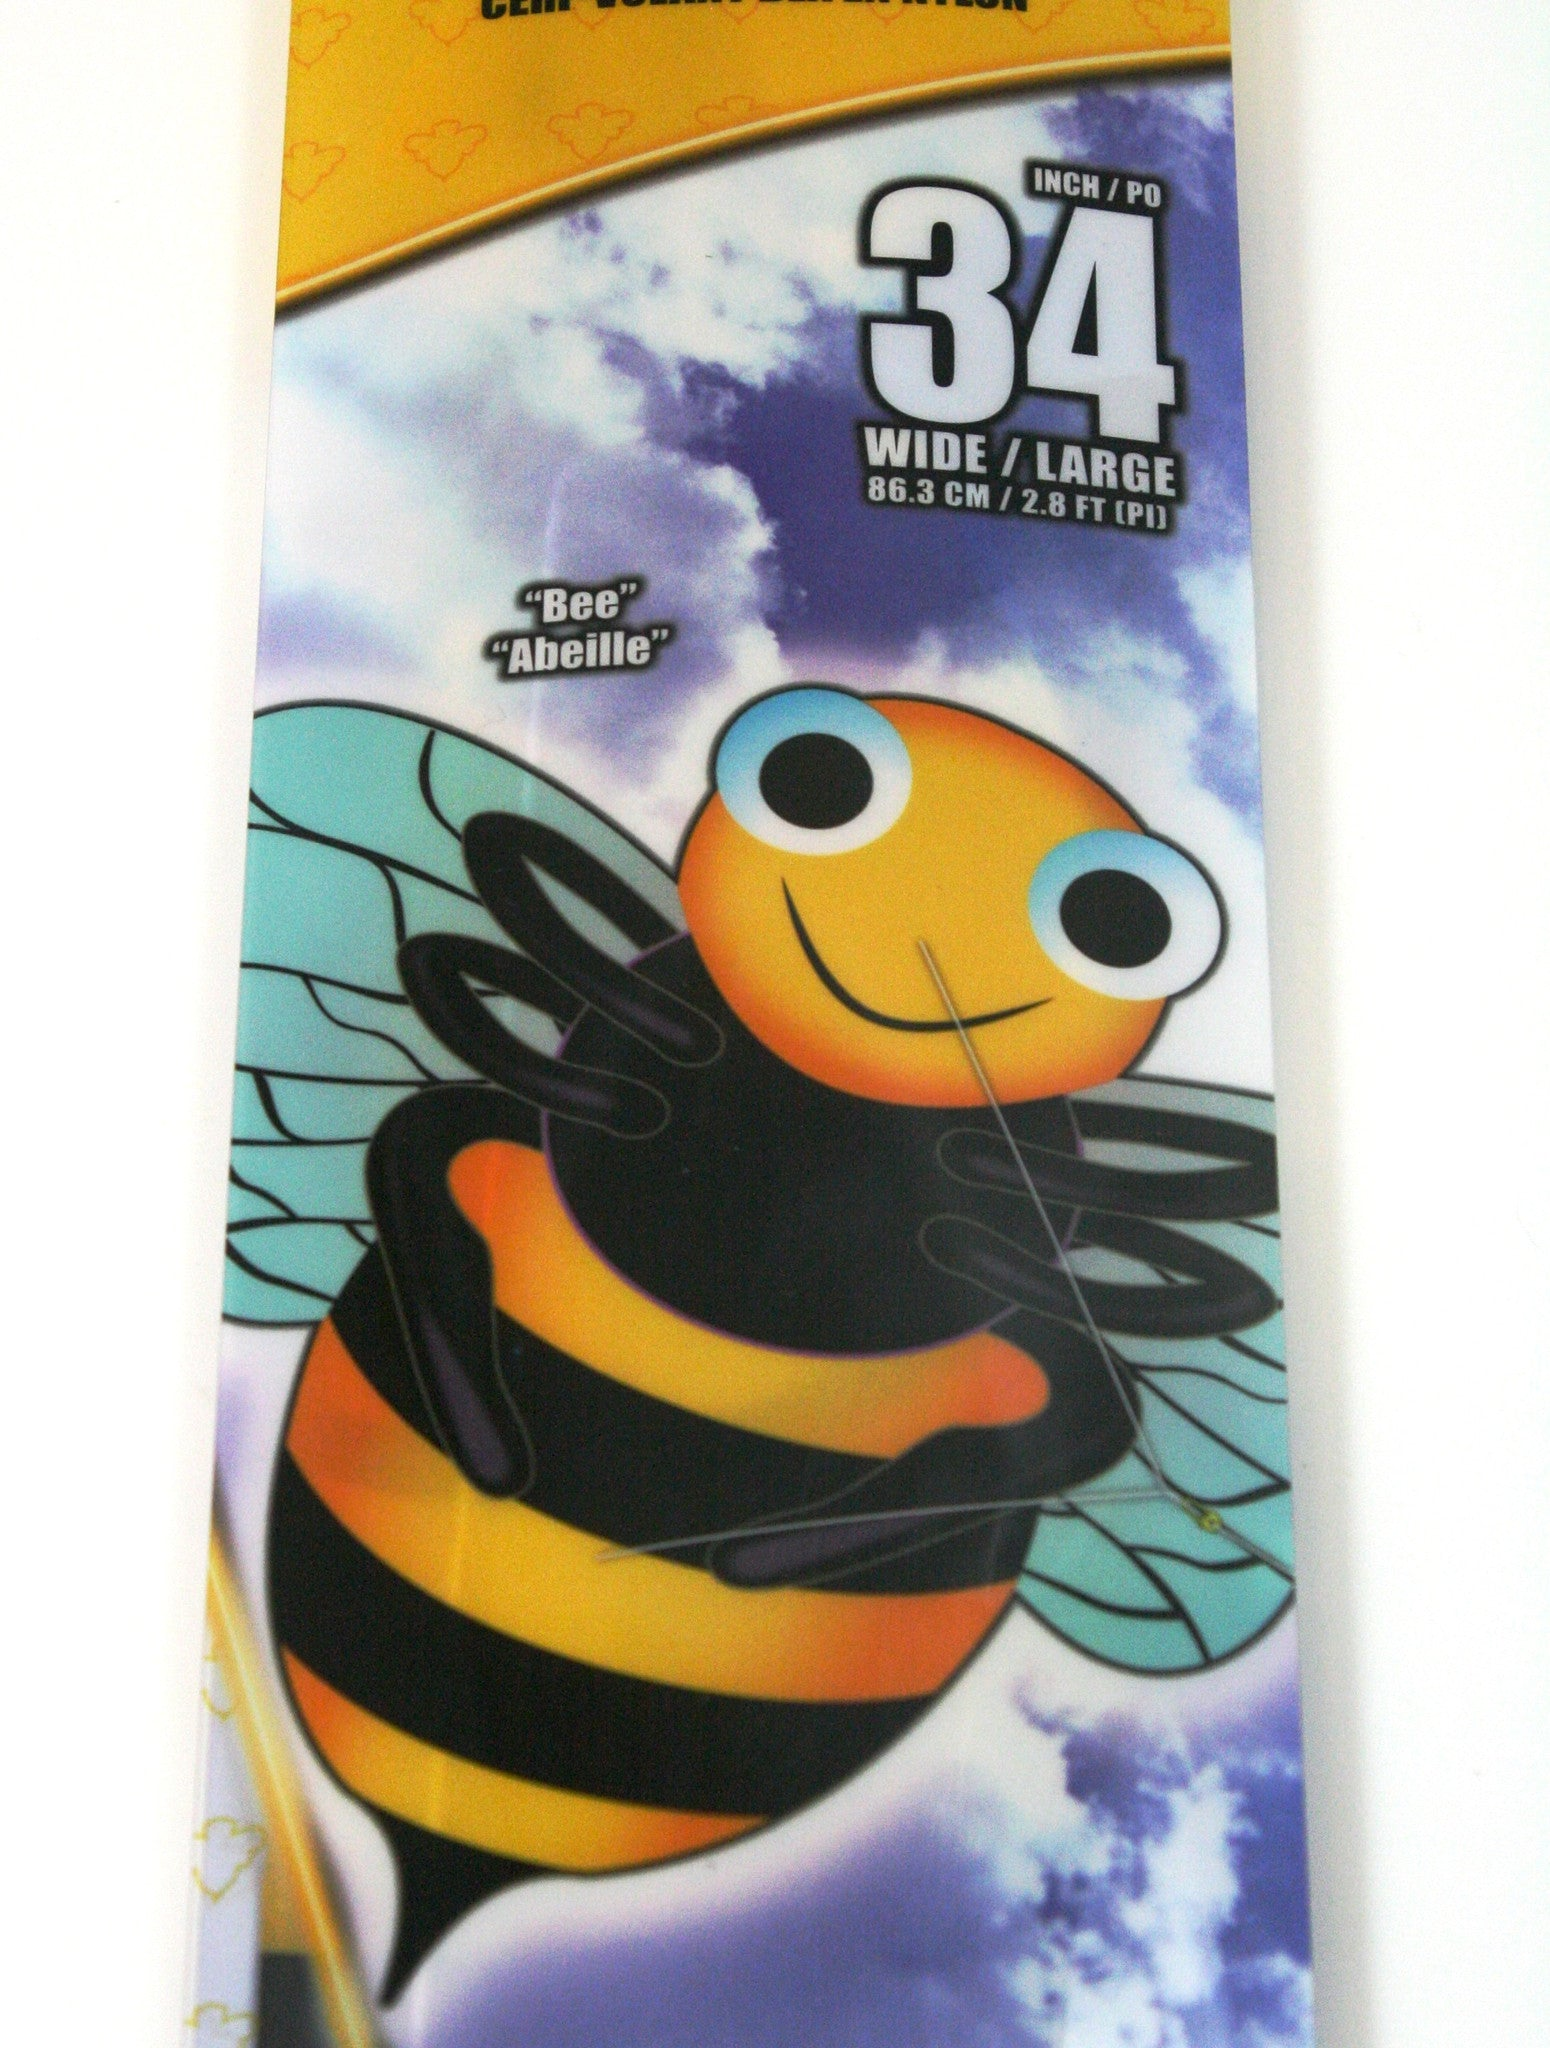 34 Inch X-Kites SkyBugz Bumble Bee Kite w/Handle & Line - Off The Wall Toys and Gifts